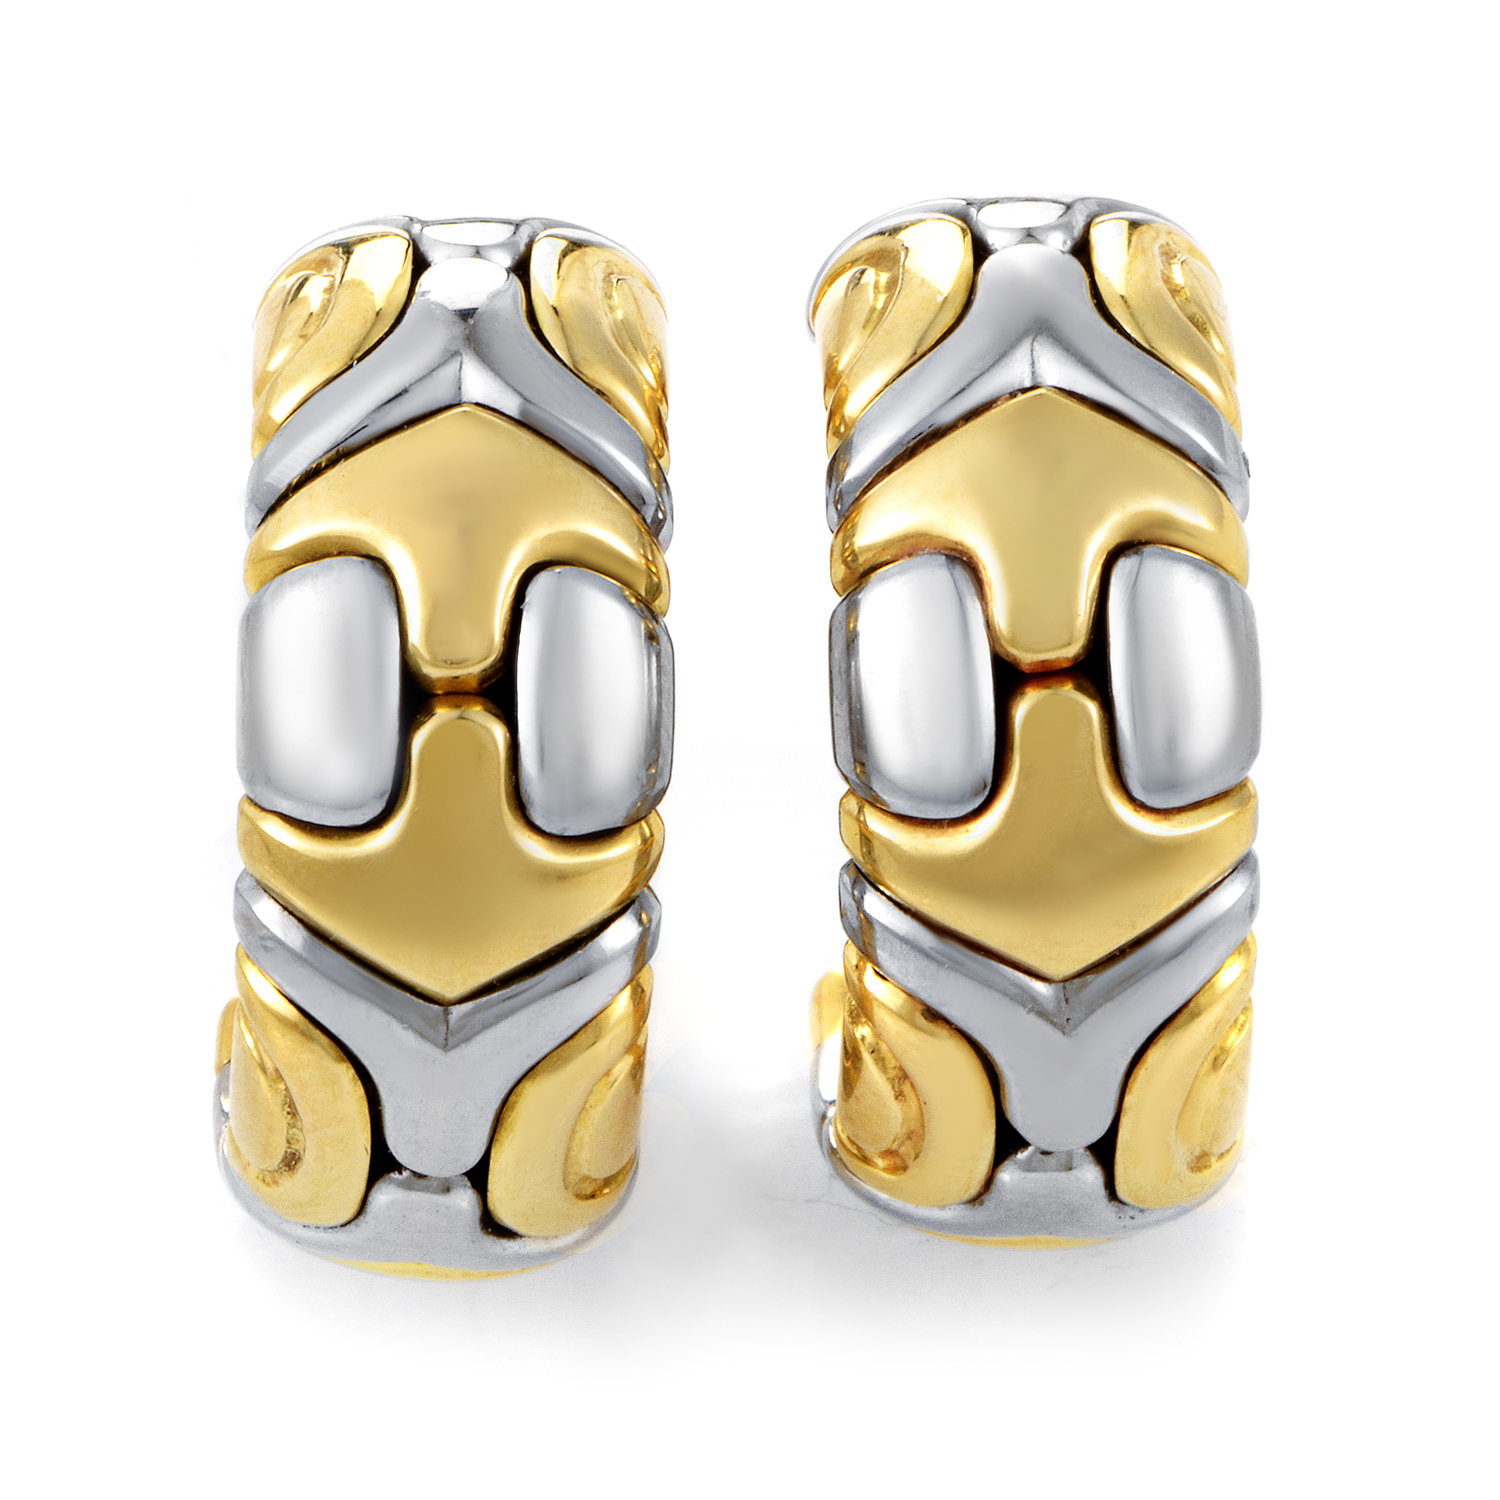 Bvlgari Alveare Women's 18K Yellow Gold & Stainless Steel Huggie Earrings